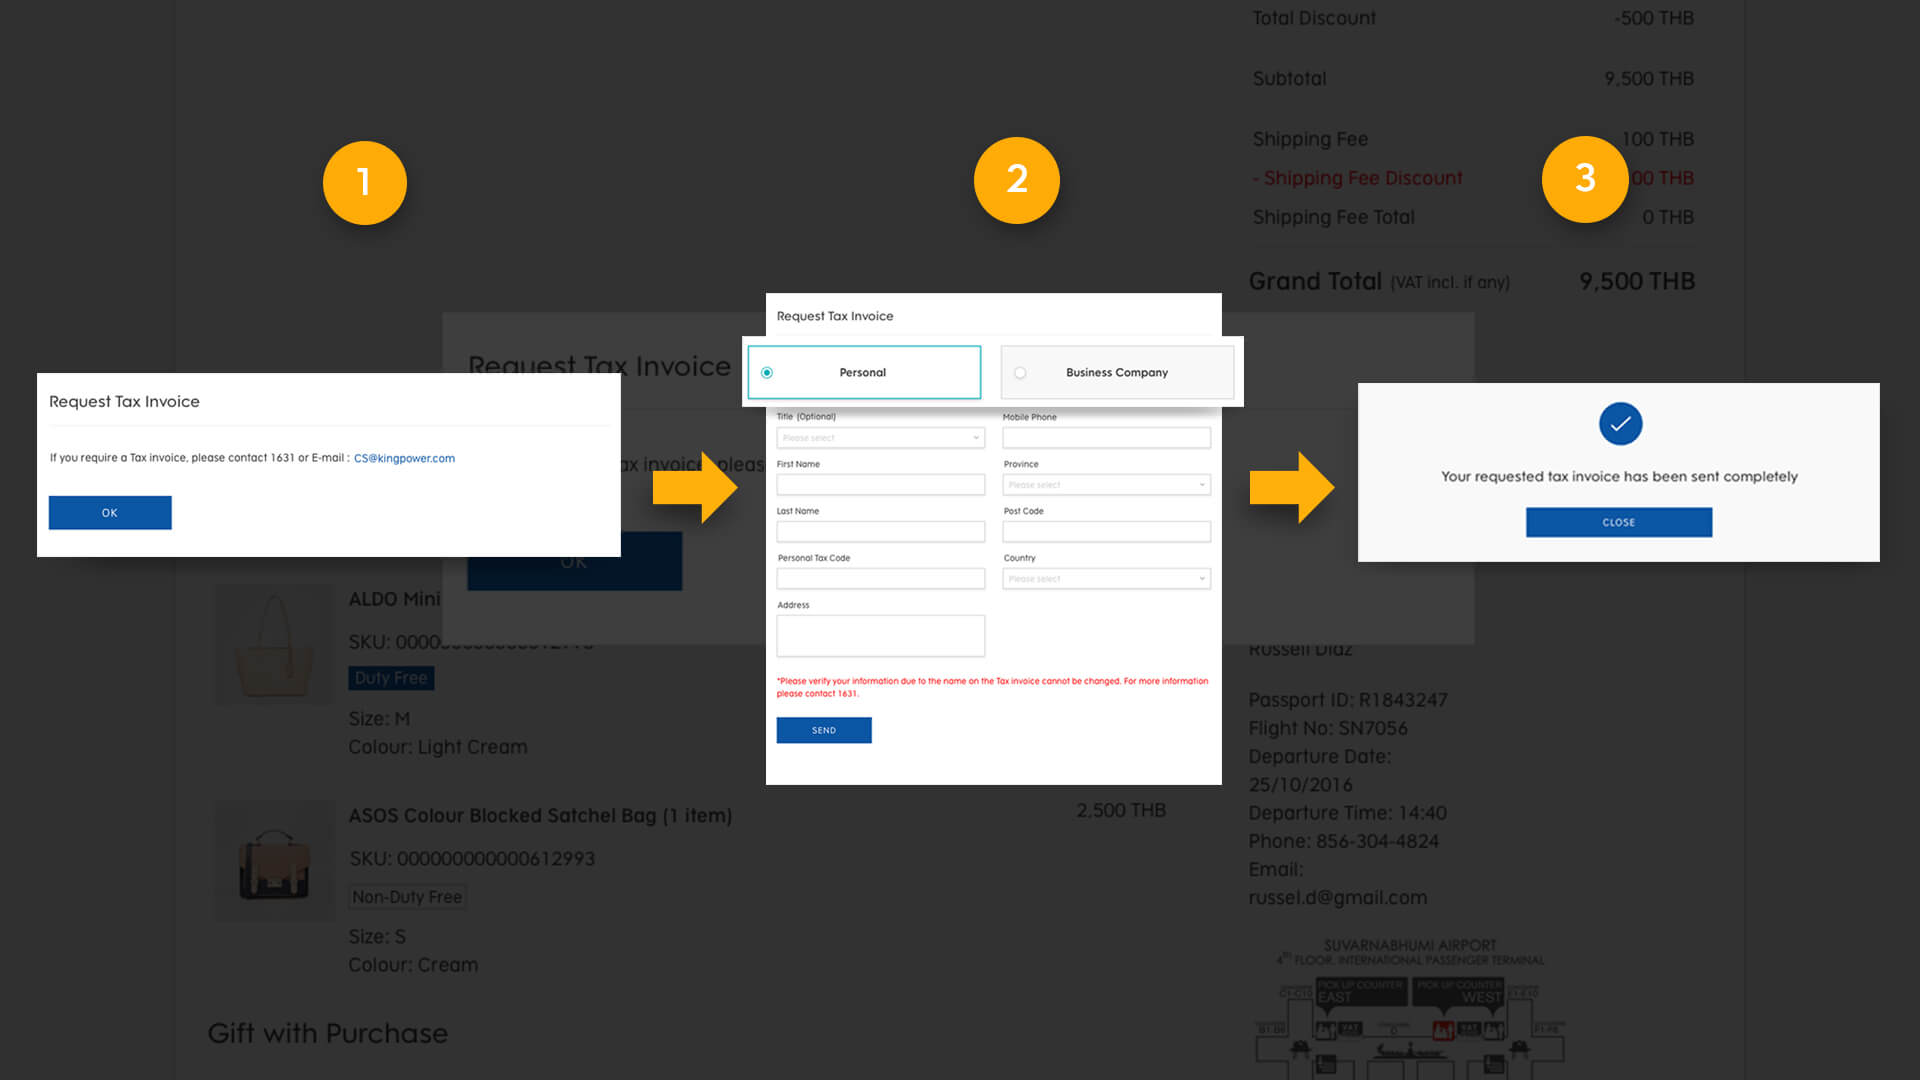 complete Tax invoice request form